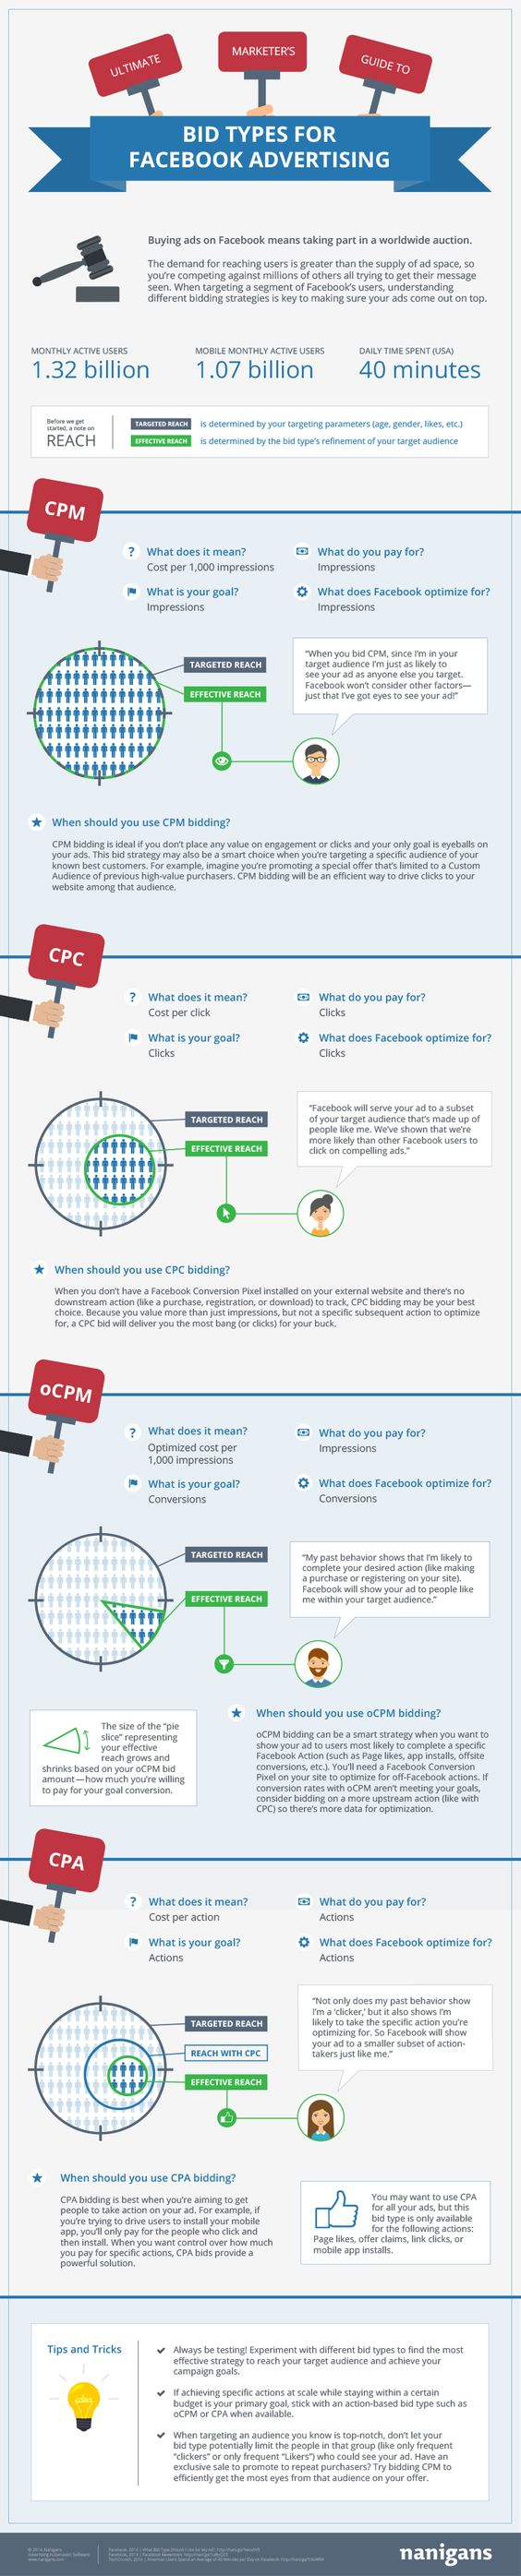 Ultimate Marketer's Guide to Bid Types for #Facebook Advertising #Infographic - #socialmedia